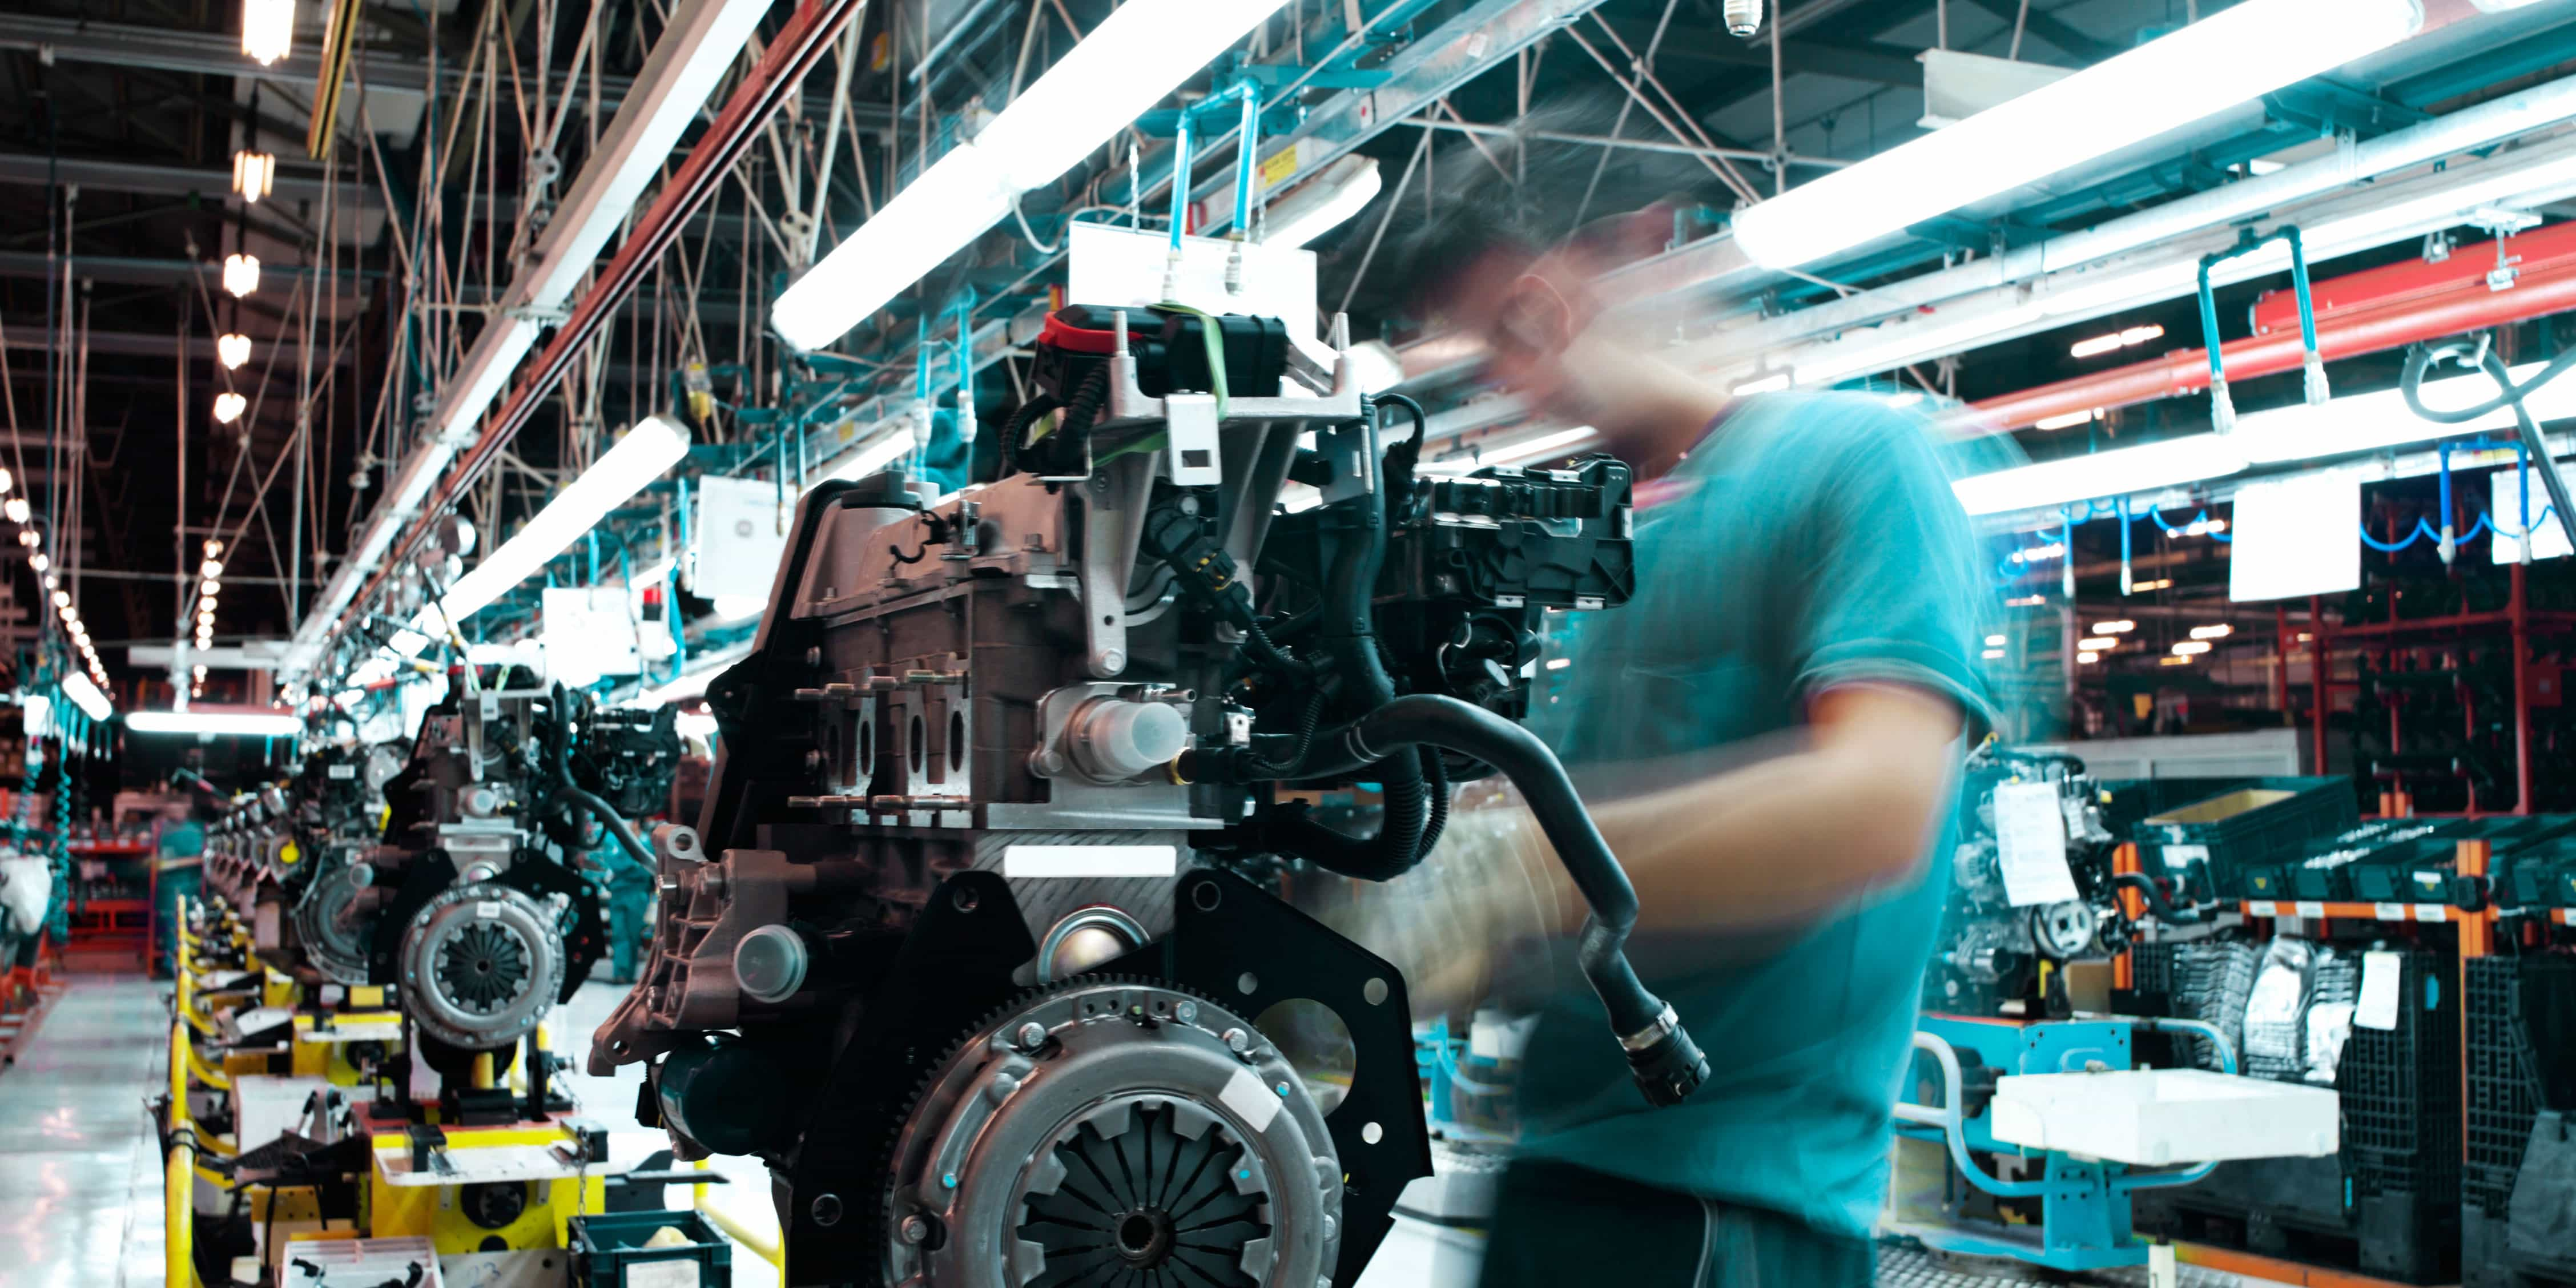 Product Lifecycle Management - Man working on a car engine